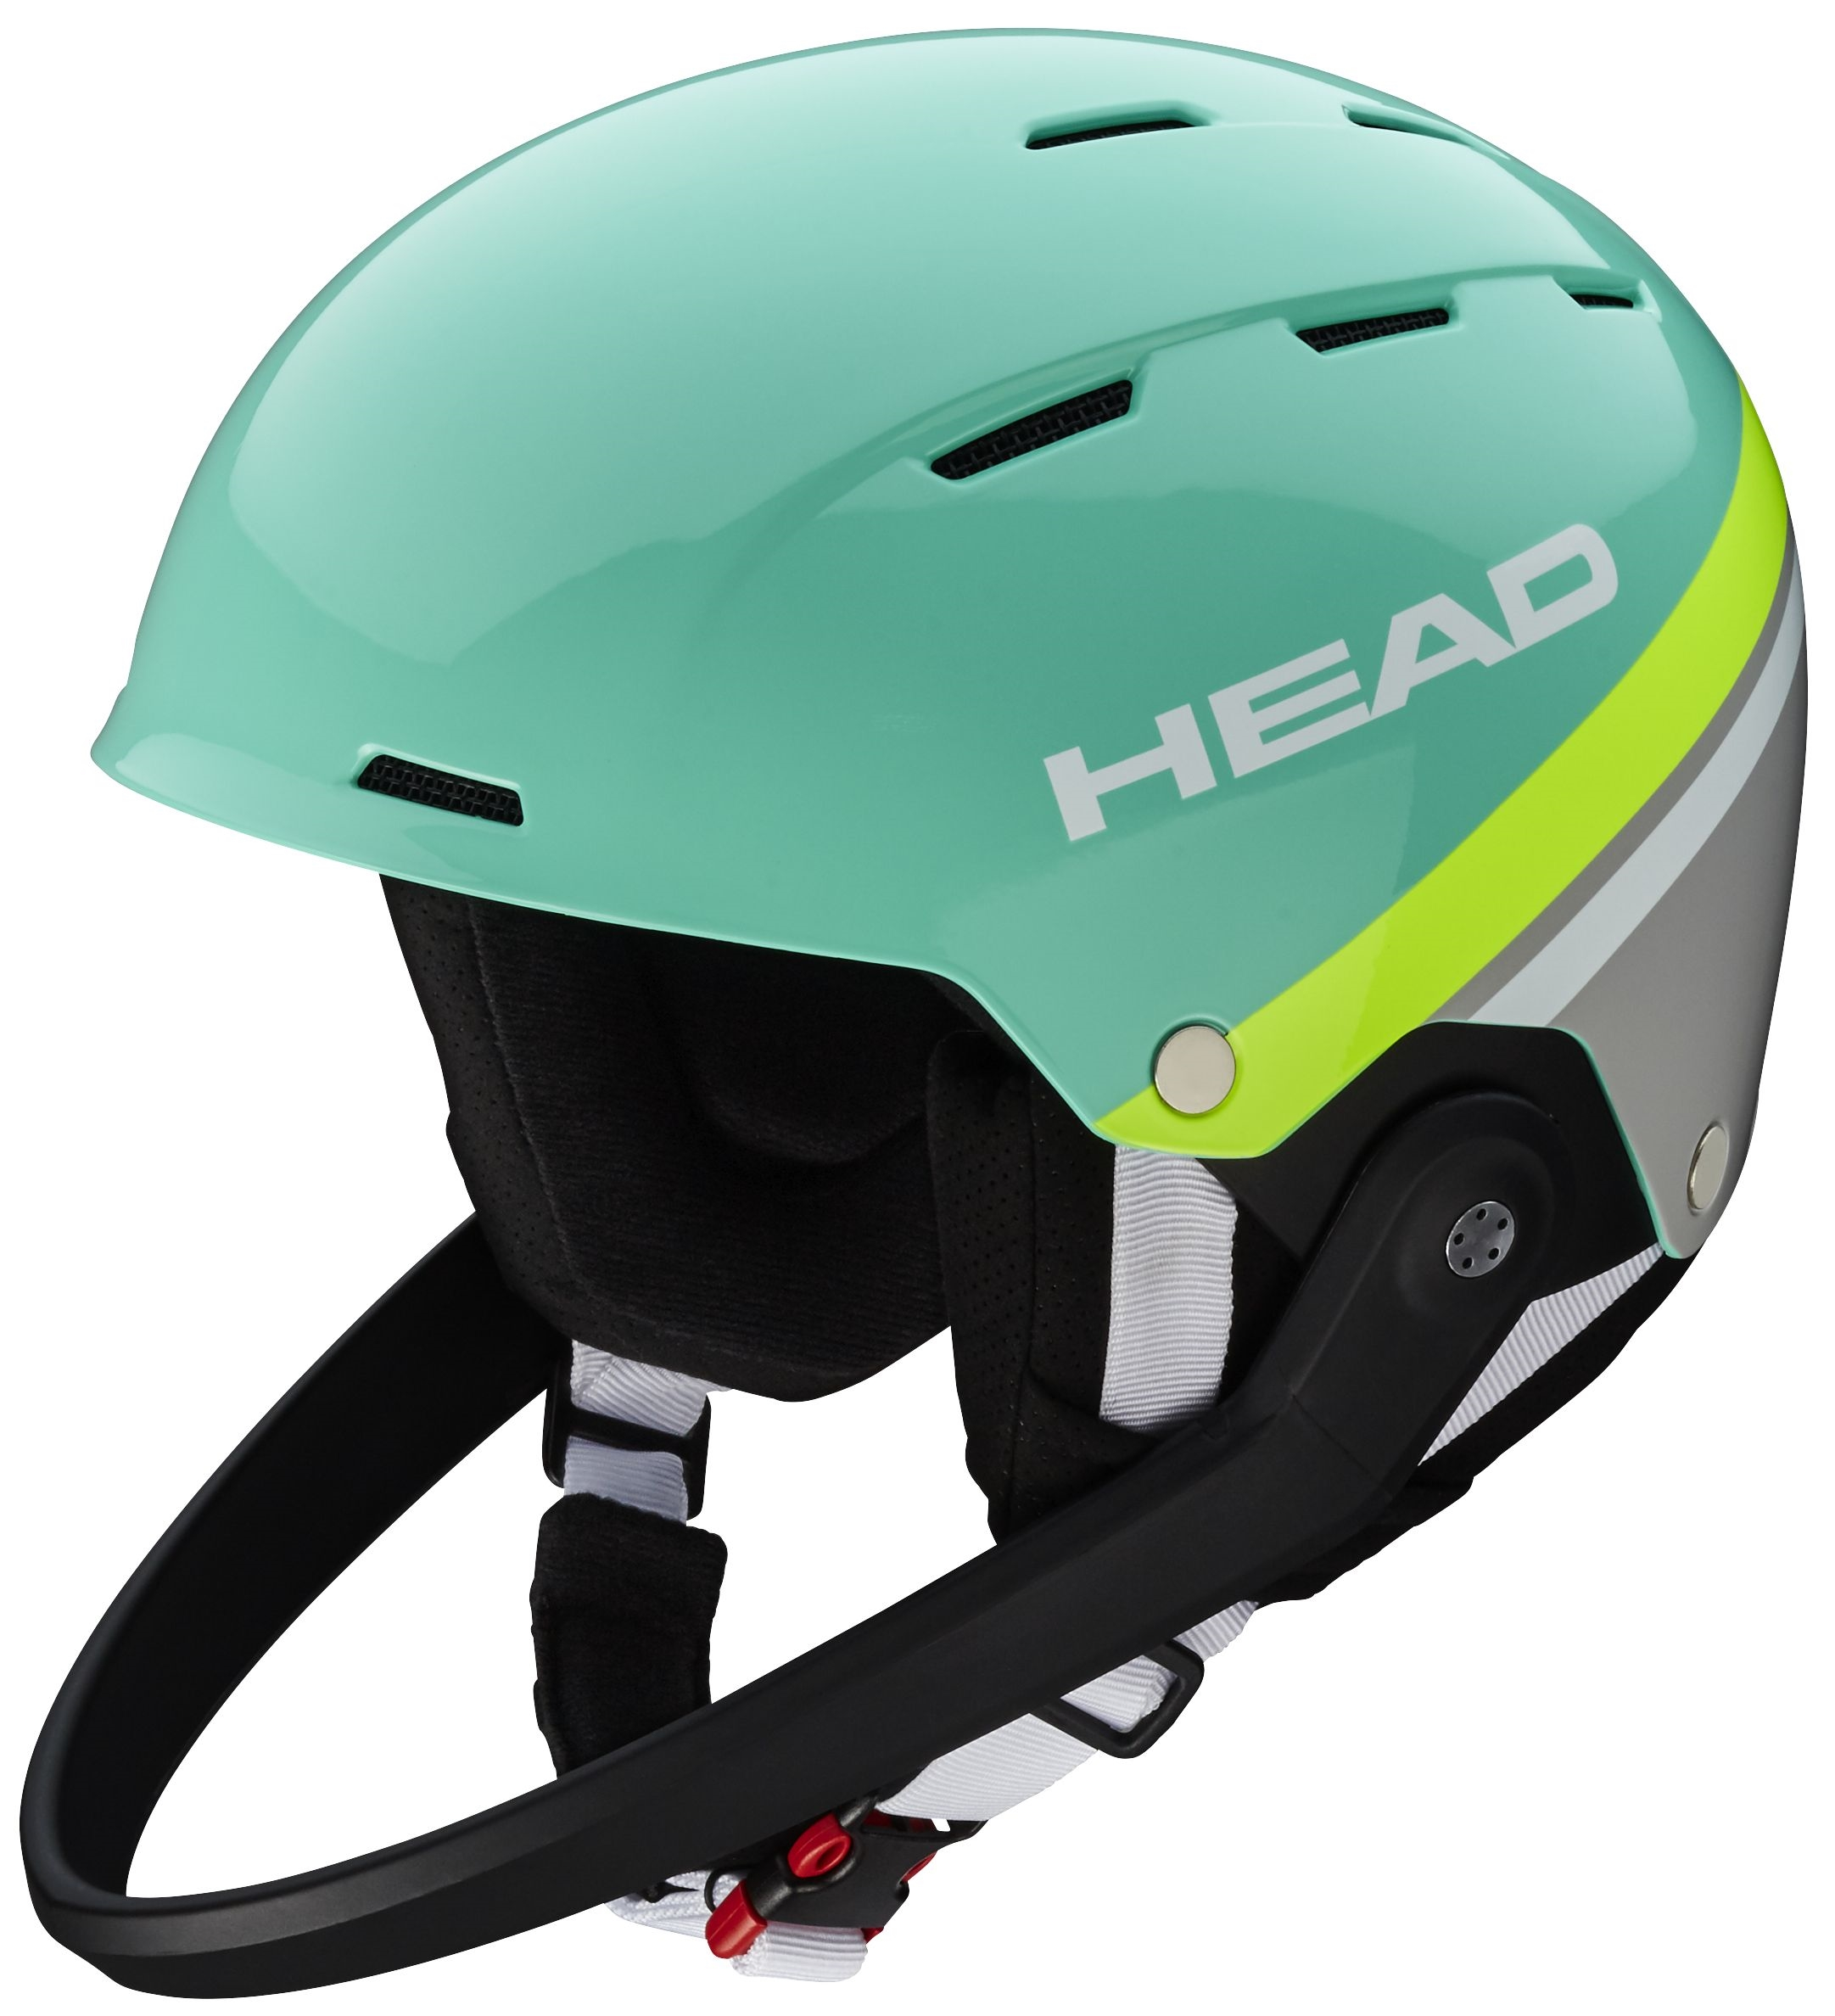 Head kask narciarski Team SL turquoise/grey